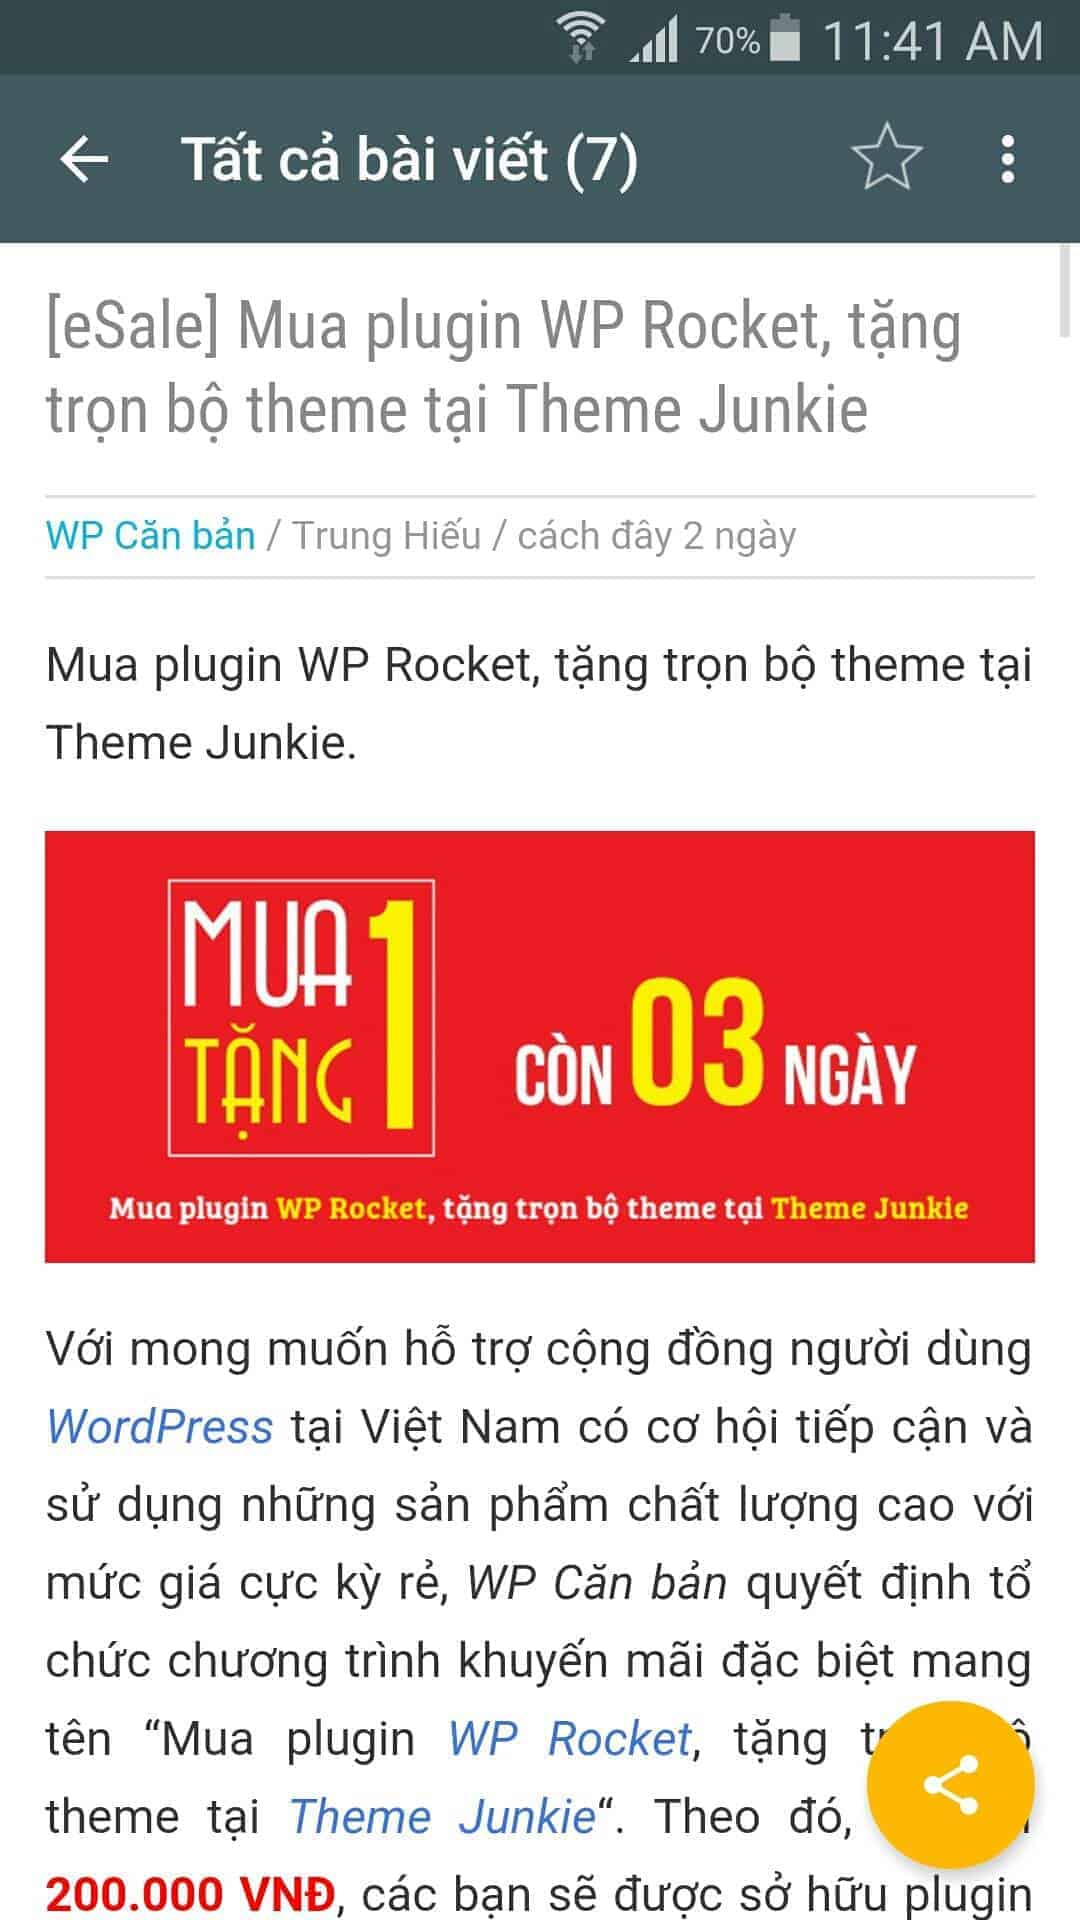 giao-dien-bai-viet-trong-ung-dung-wp-can-ban